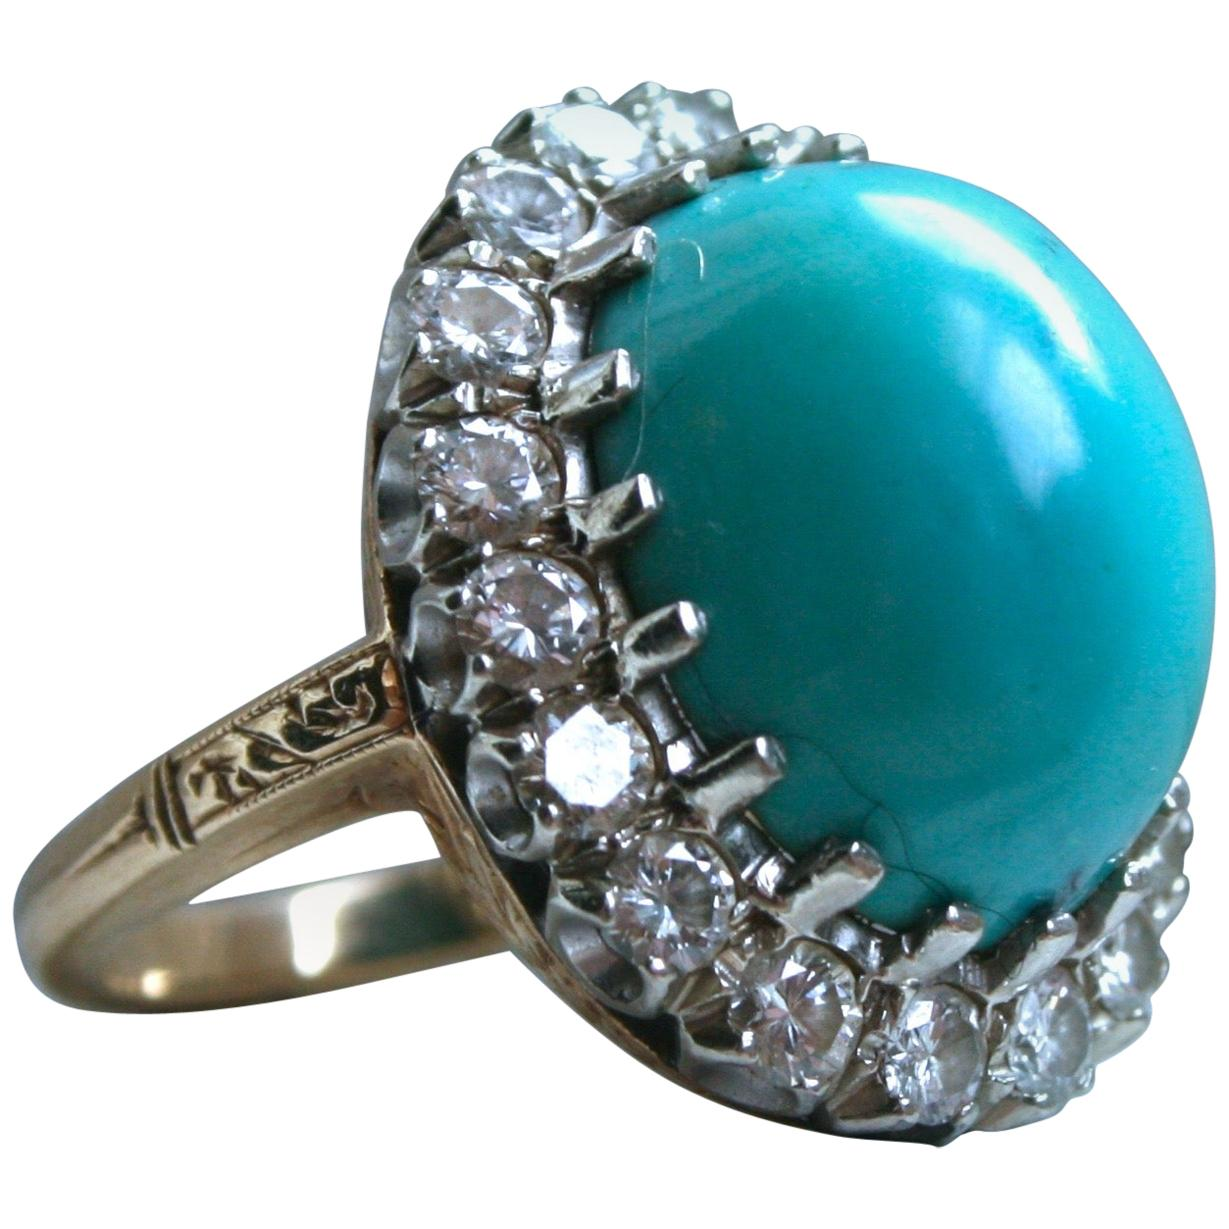 21633afcfa4a9 Antique Turquoise Rings - 448 For Sale at 1stdibs